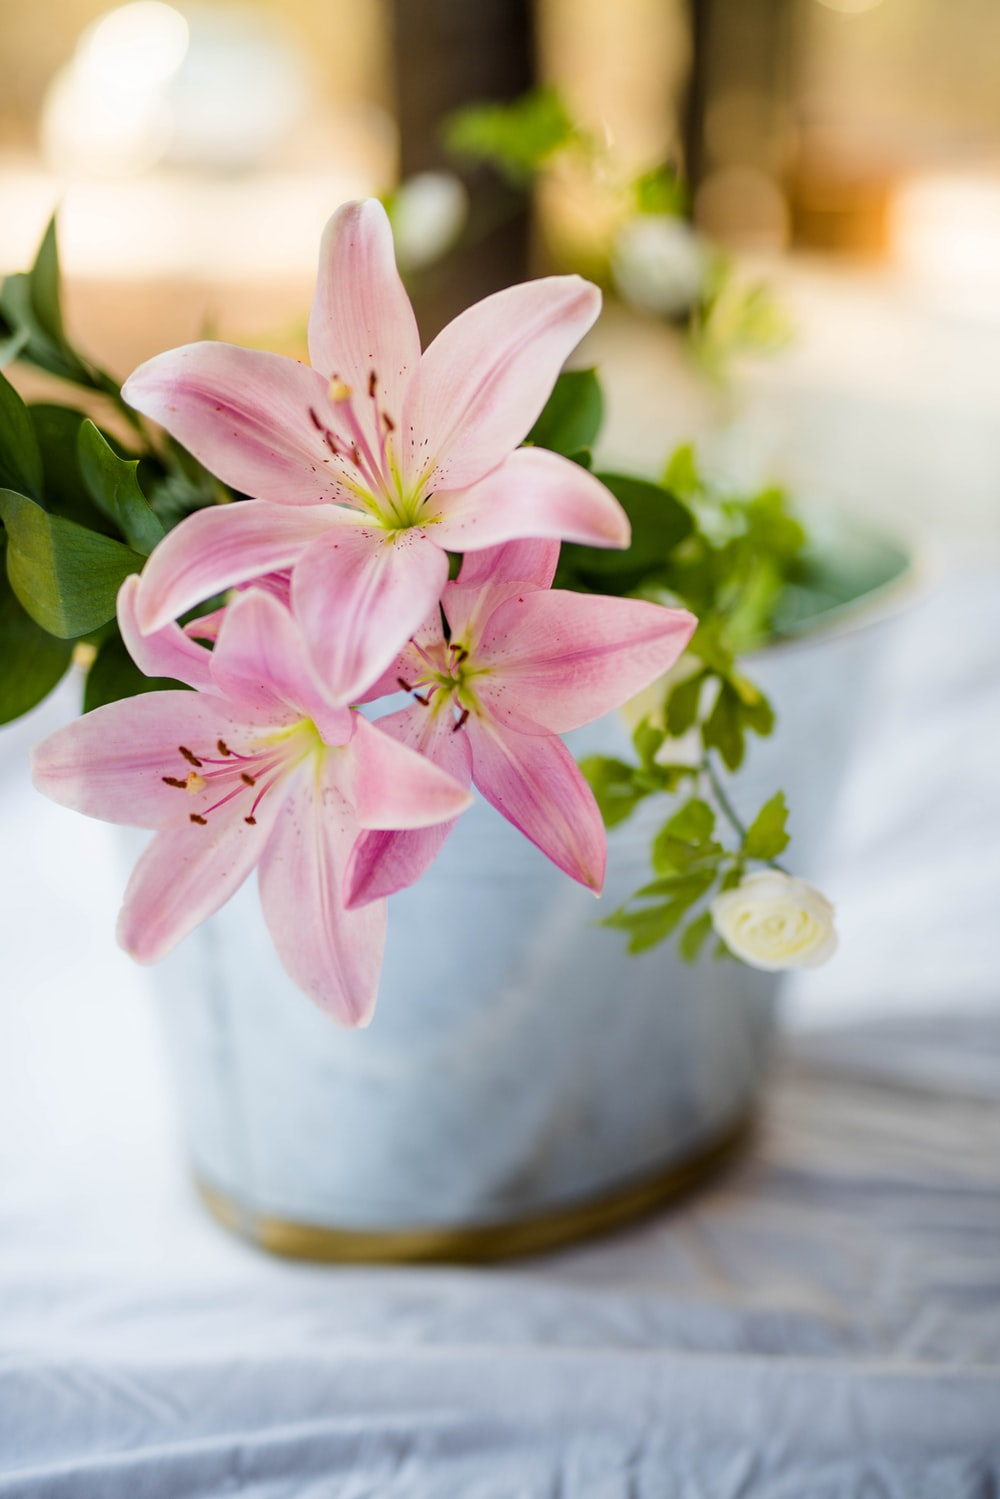 pink flower plant in white pot